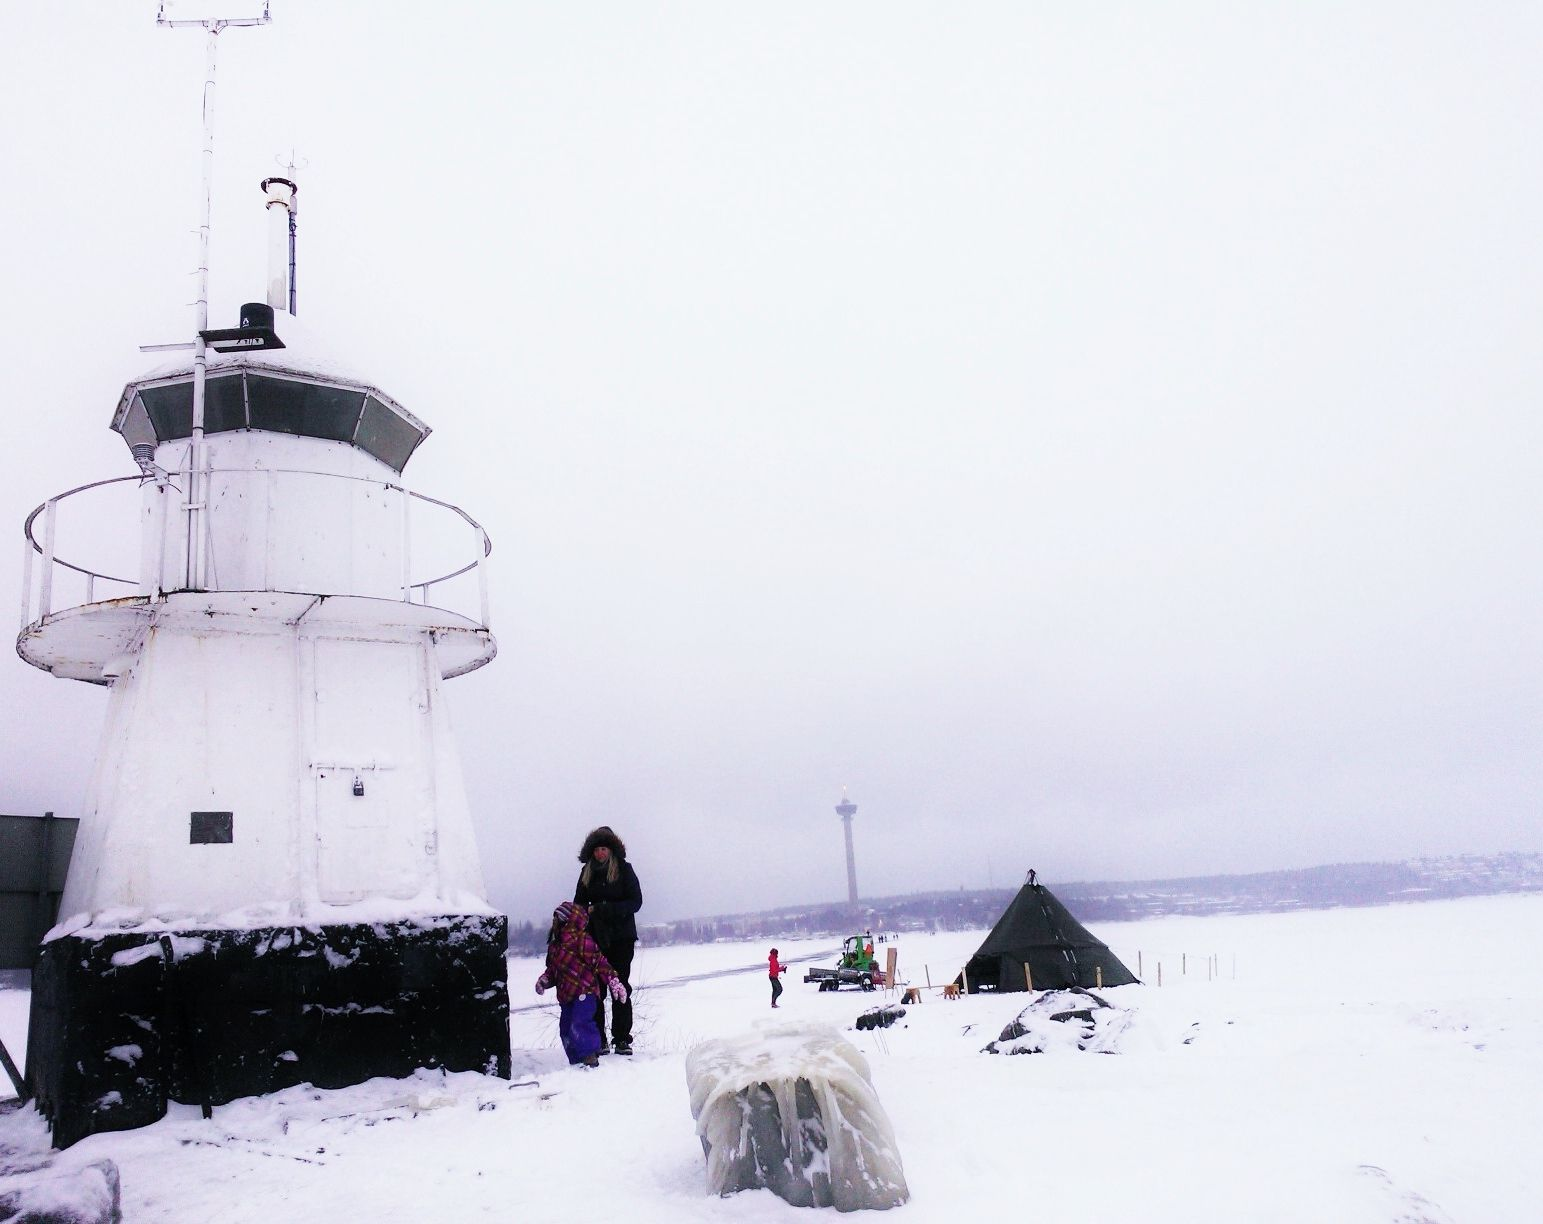 Take a wintry hike to Siilinkari lighthouse at the Lake Näsijärvi in Tampere, Finland. www.tampereallbright.fi #Winter #Hiking #Ice #Skating #Skiing